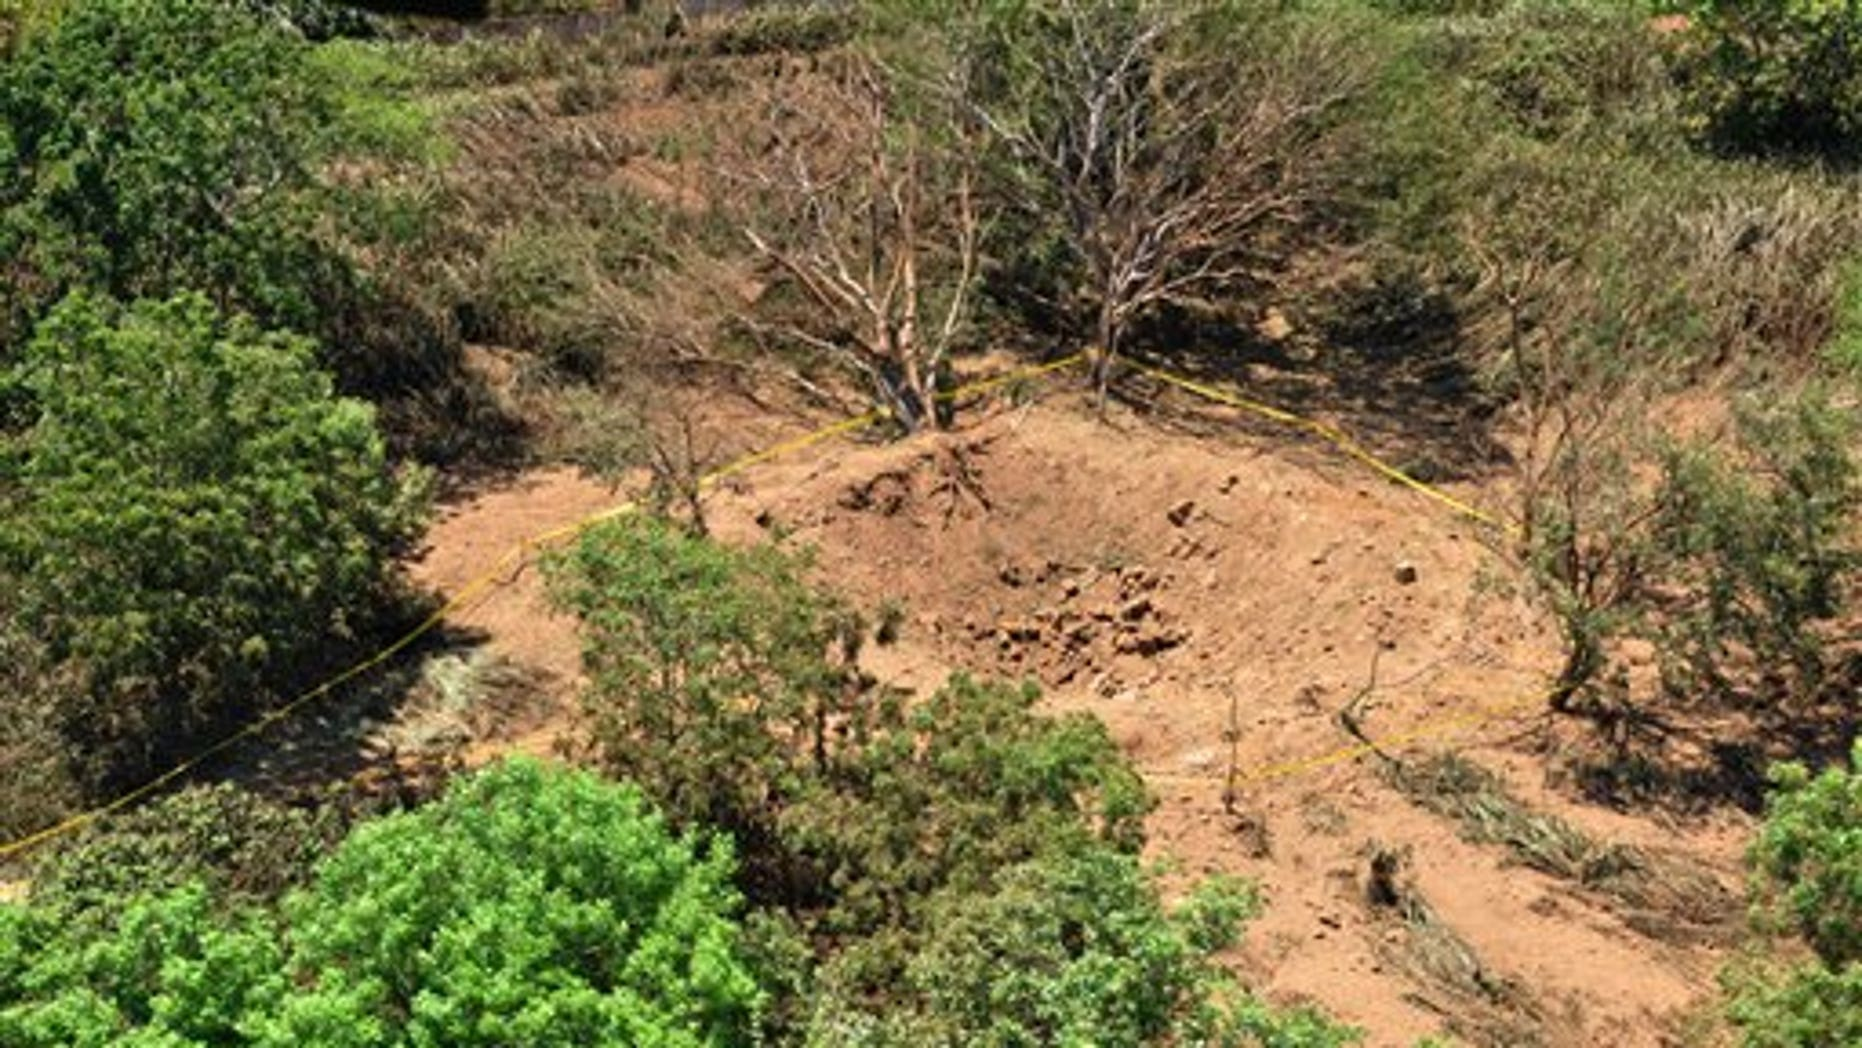 """In this Sunday Sept. 7, 2014, publicly distributed handout photo provided by the Nicaraguan Army shows an impact crater made by a small meteorite in a wooded area near Managua's international airport and an air force base. Nicaraguan government spokeswoman Rosario Murillo said Sunday that a loud boom heard overnight by residents of the capital was a """"relatively small"""" meteorite that """"appears to have come off an asteroid that was passing close to Earth.""""  (AP Photo/Nicaraguan Army)"""